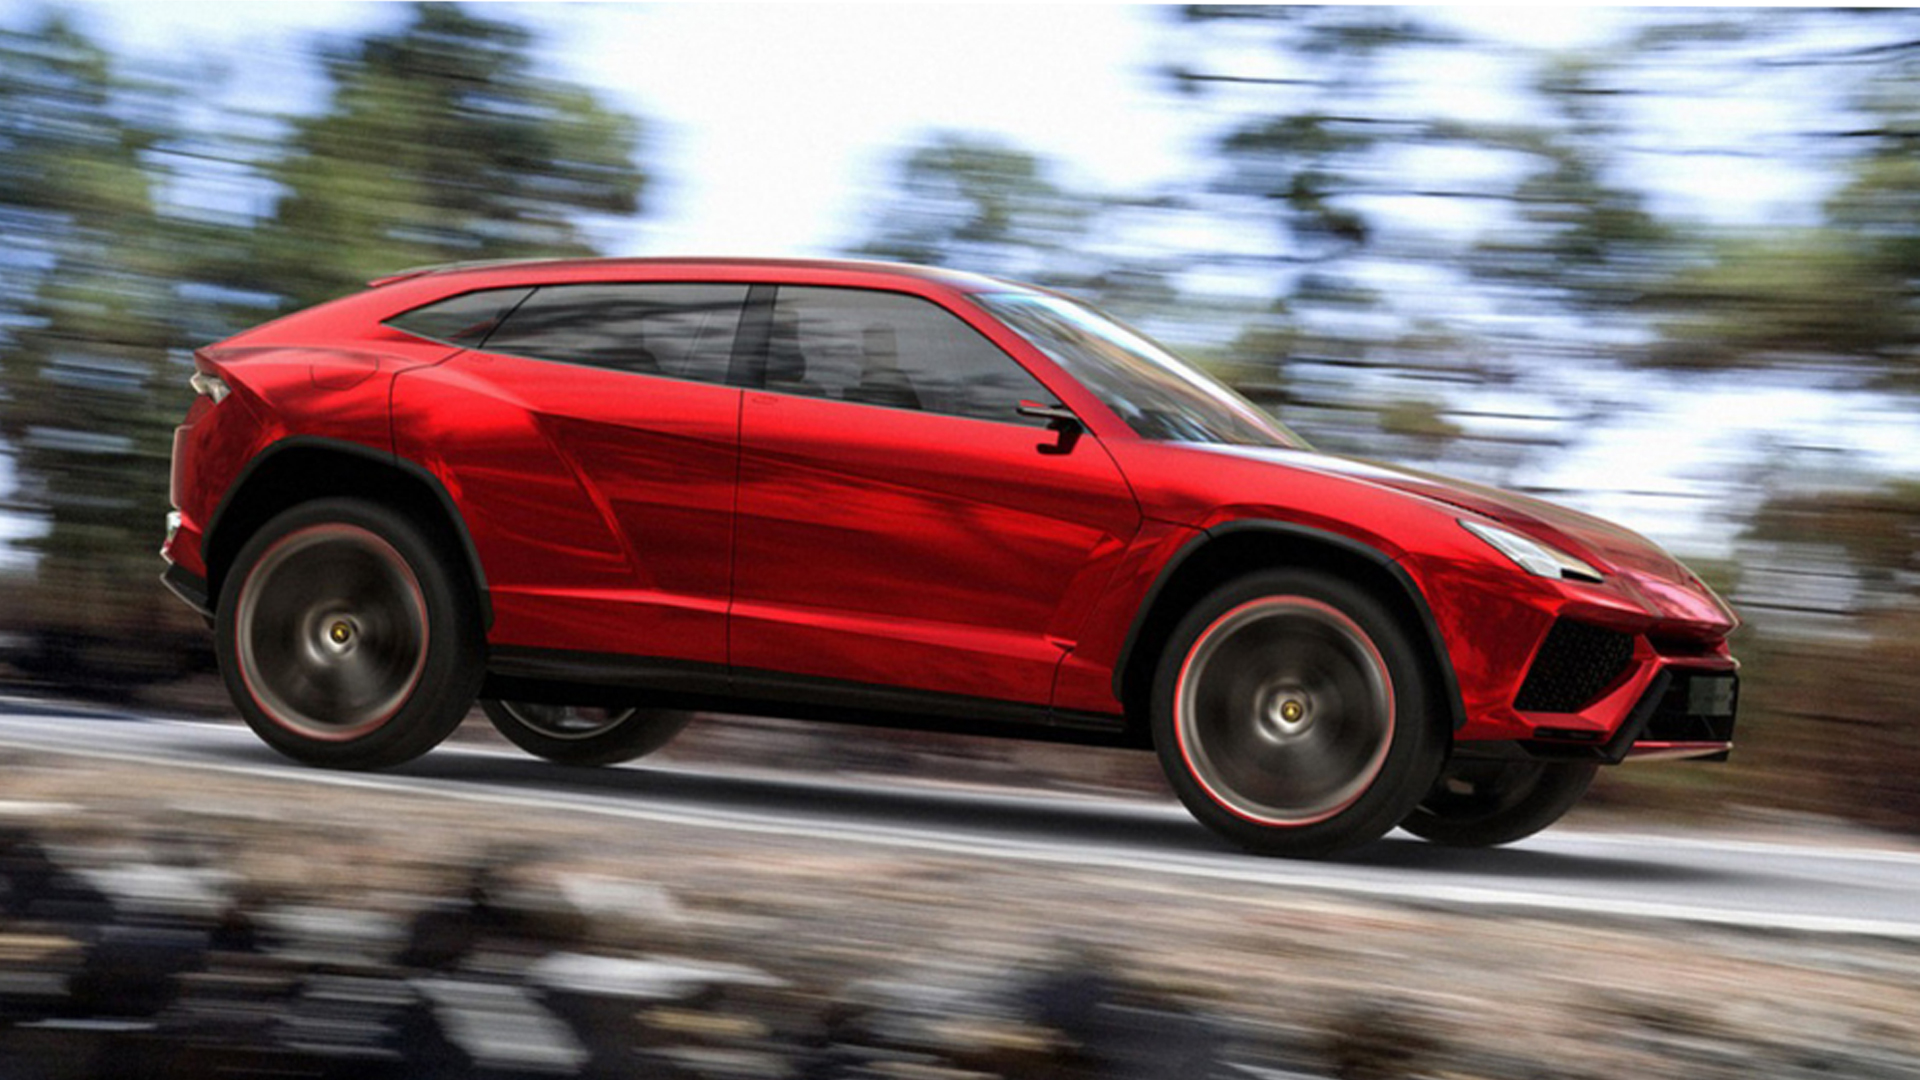 Exclusive: Lamborghini Urus SUV Production Decision to be Made This Year  GTspirit